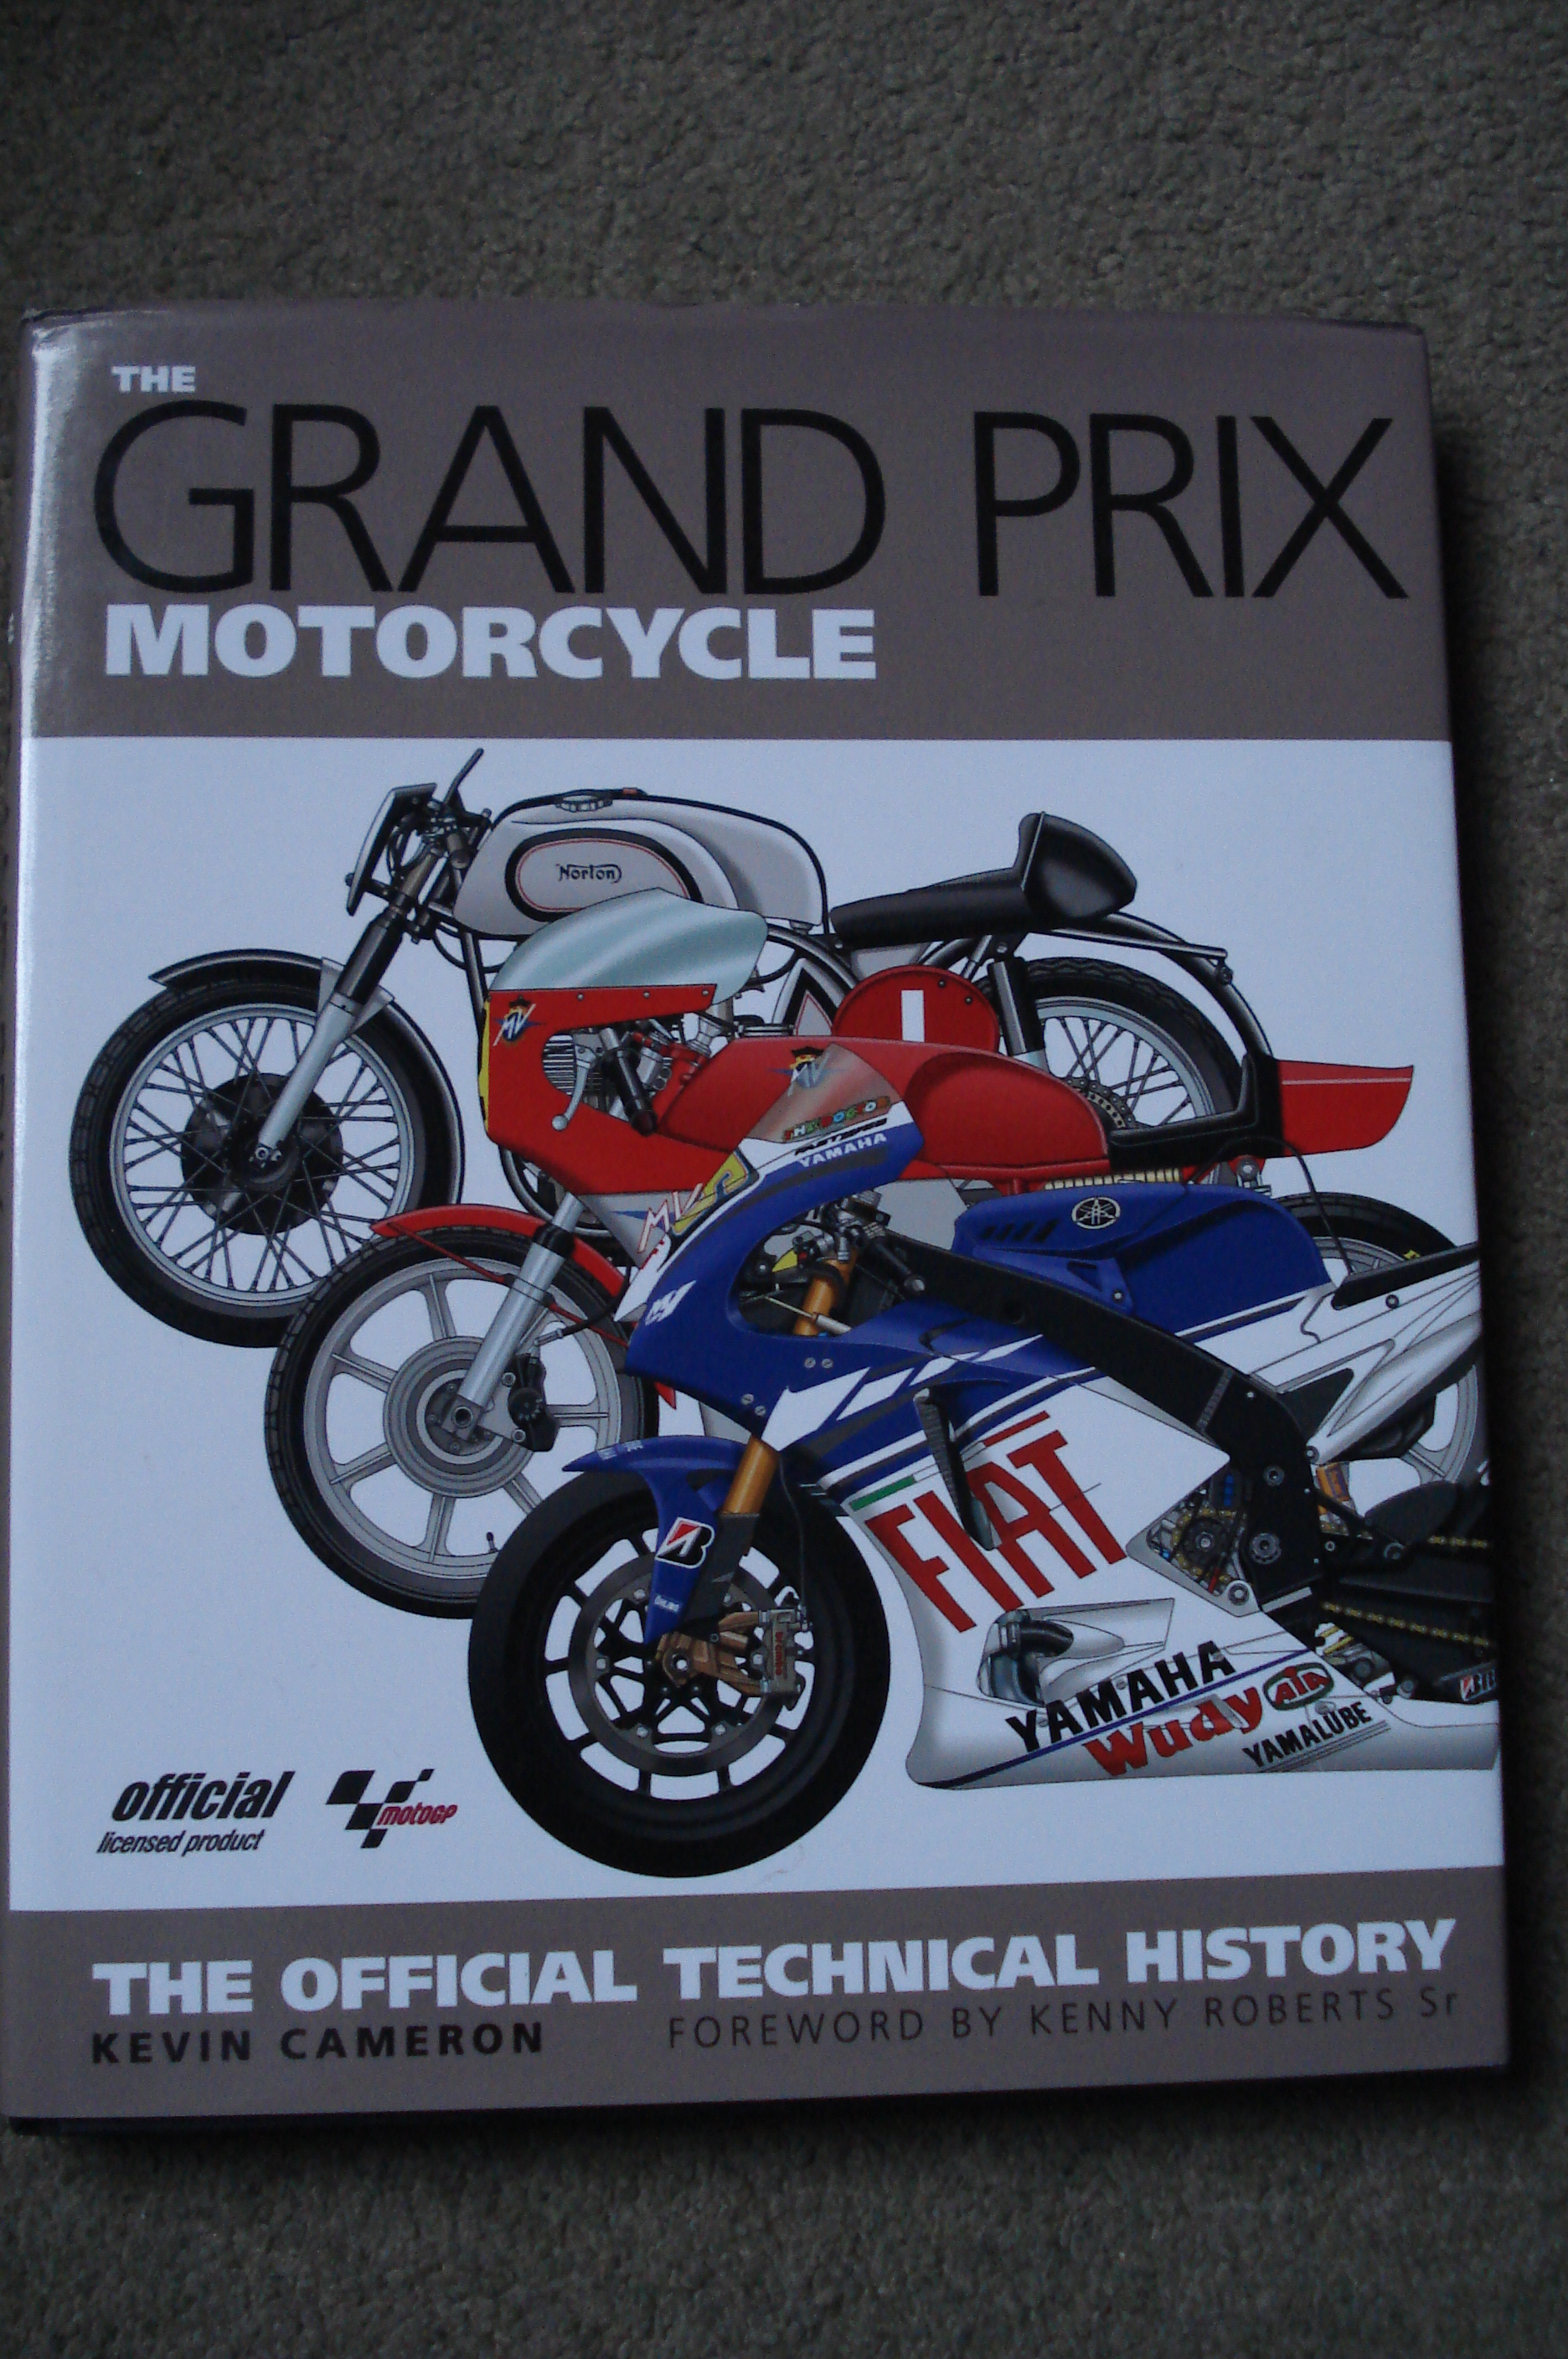 The Grand Prix Motorcycle-Kevin Cameron